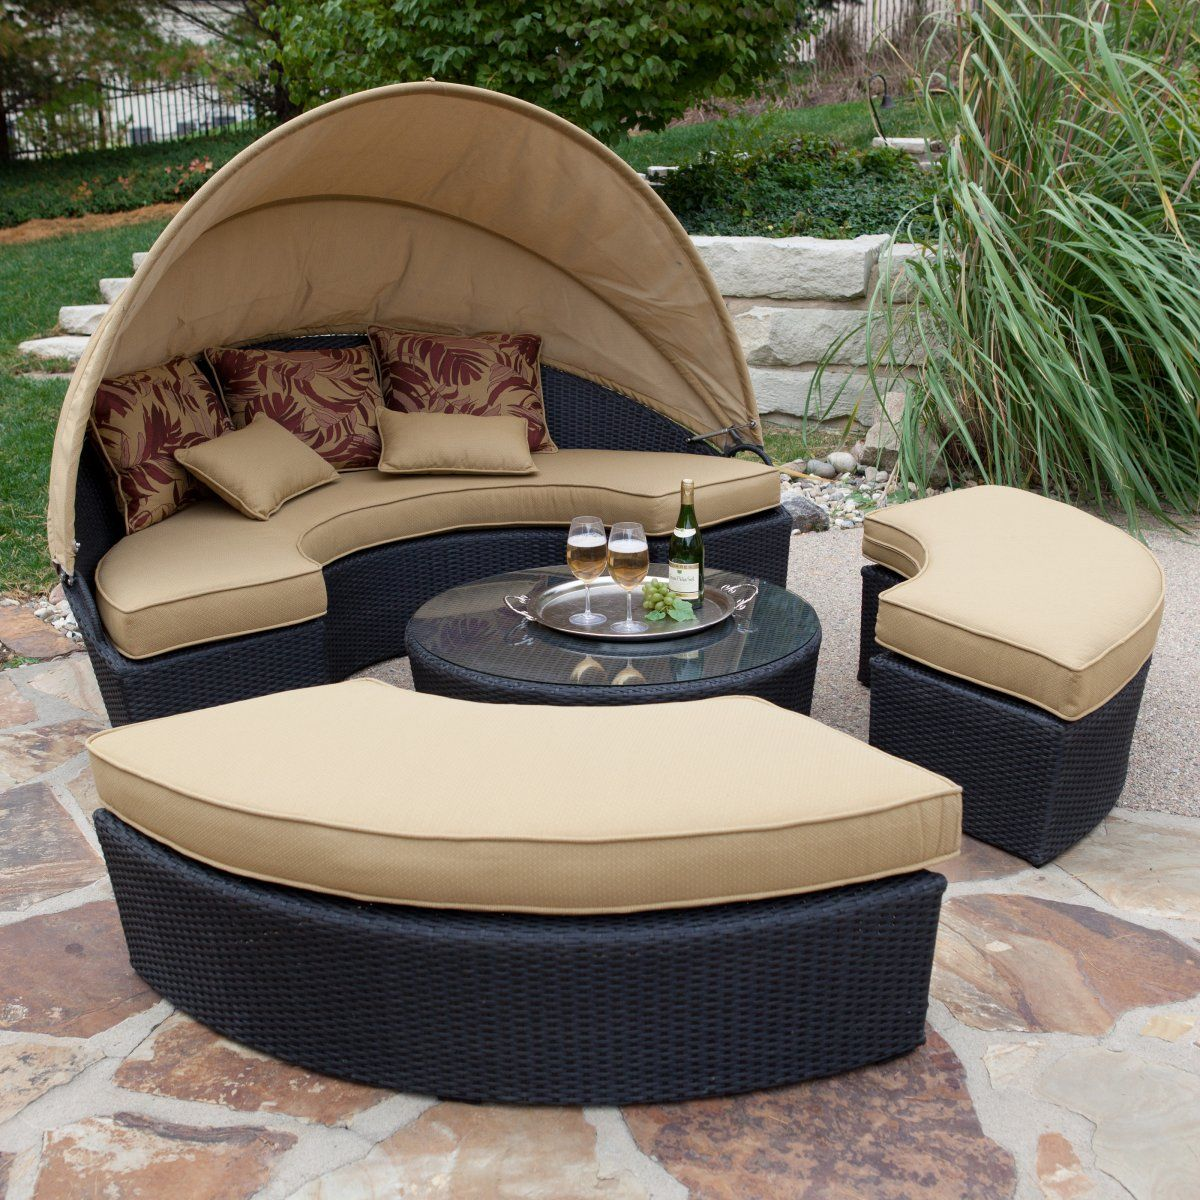 Rioja All-Weather Wicker Sectional Daybed - Patio Chairs ... on Living Spaces Outdoor Daybed id=39560